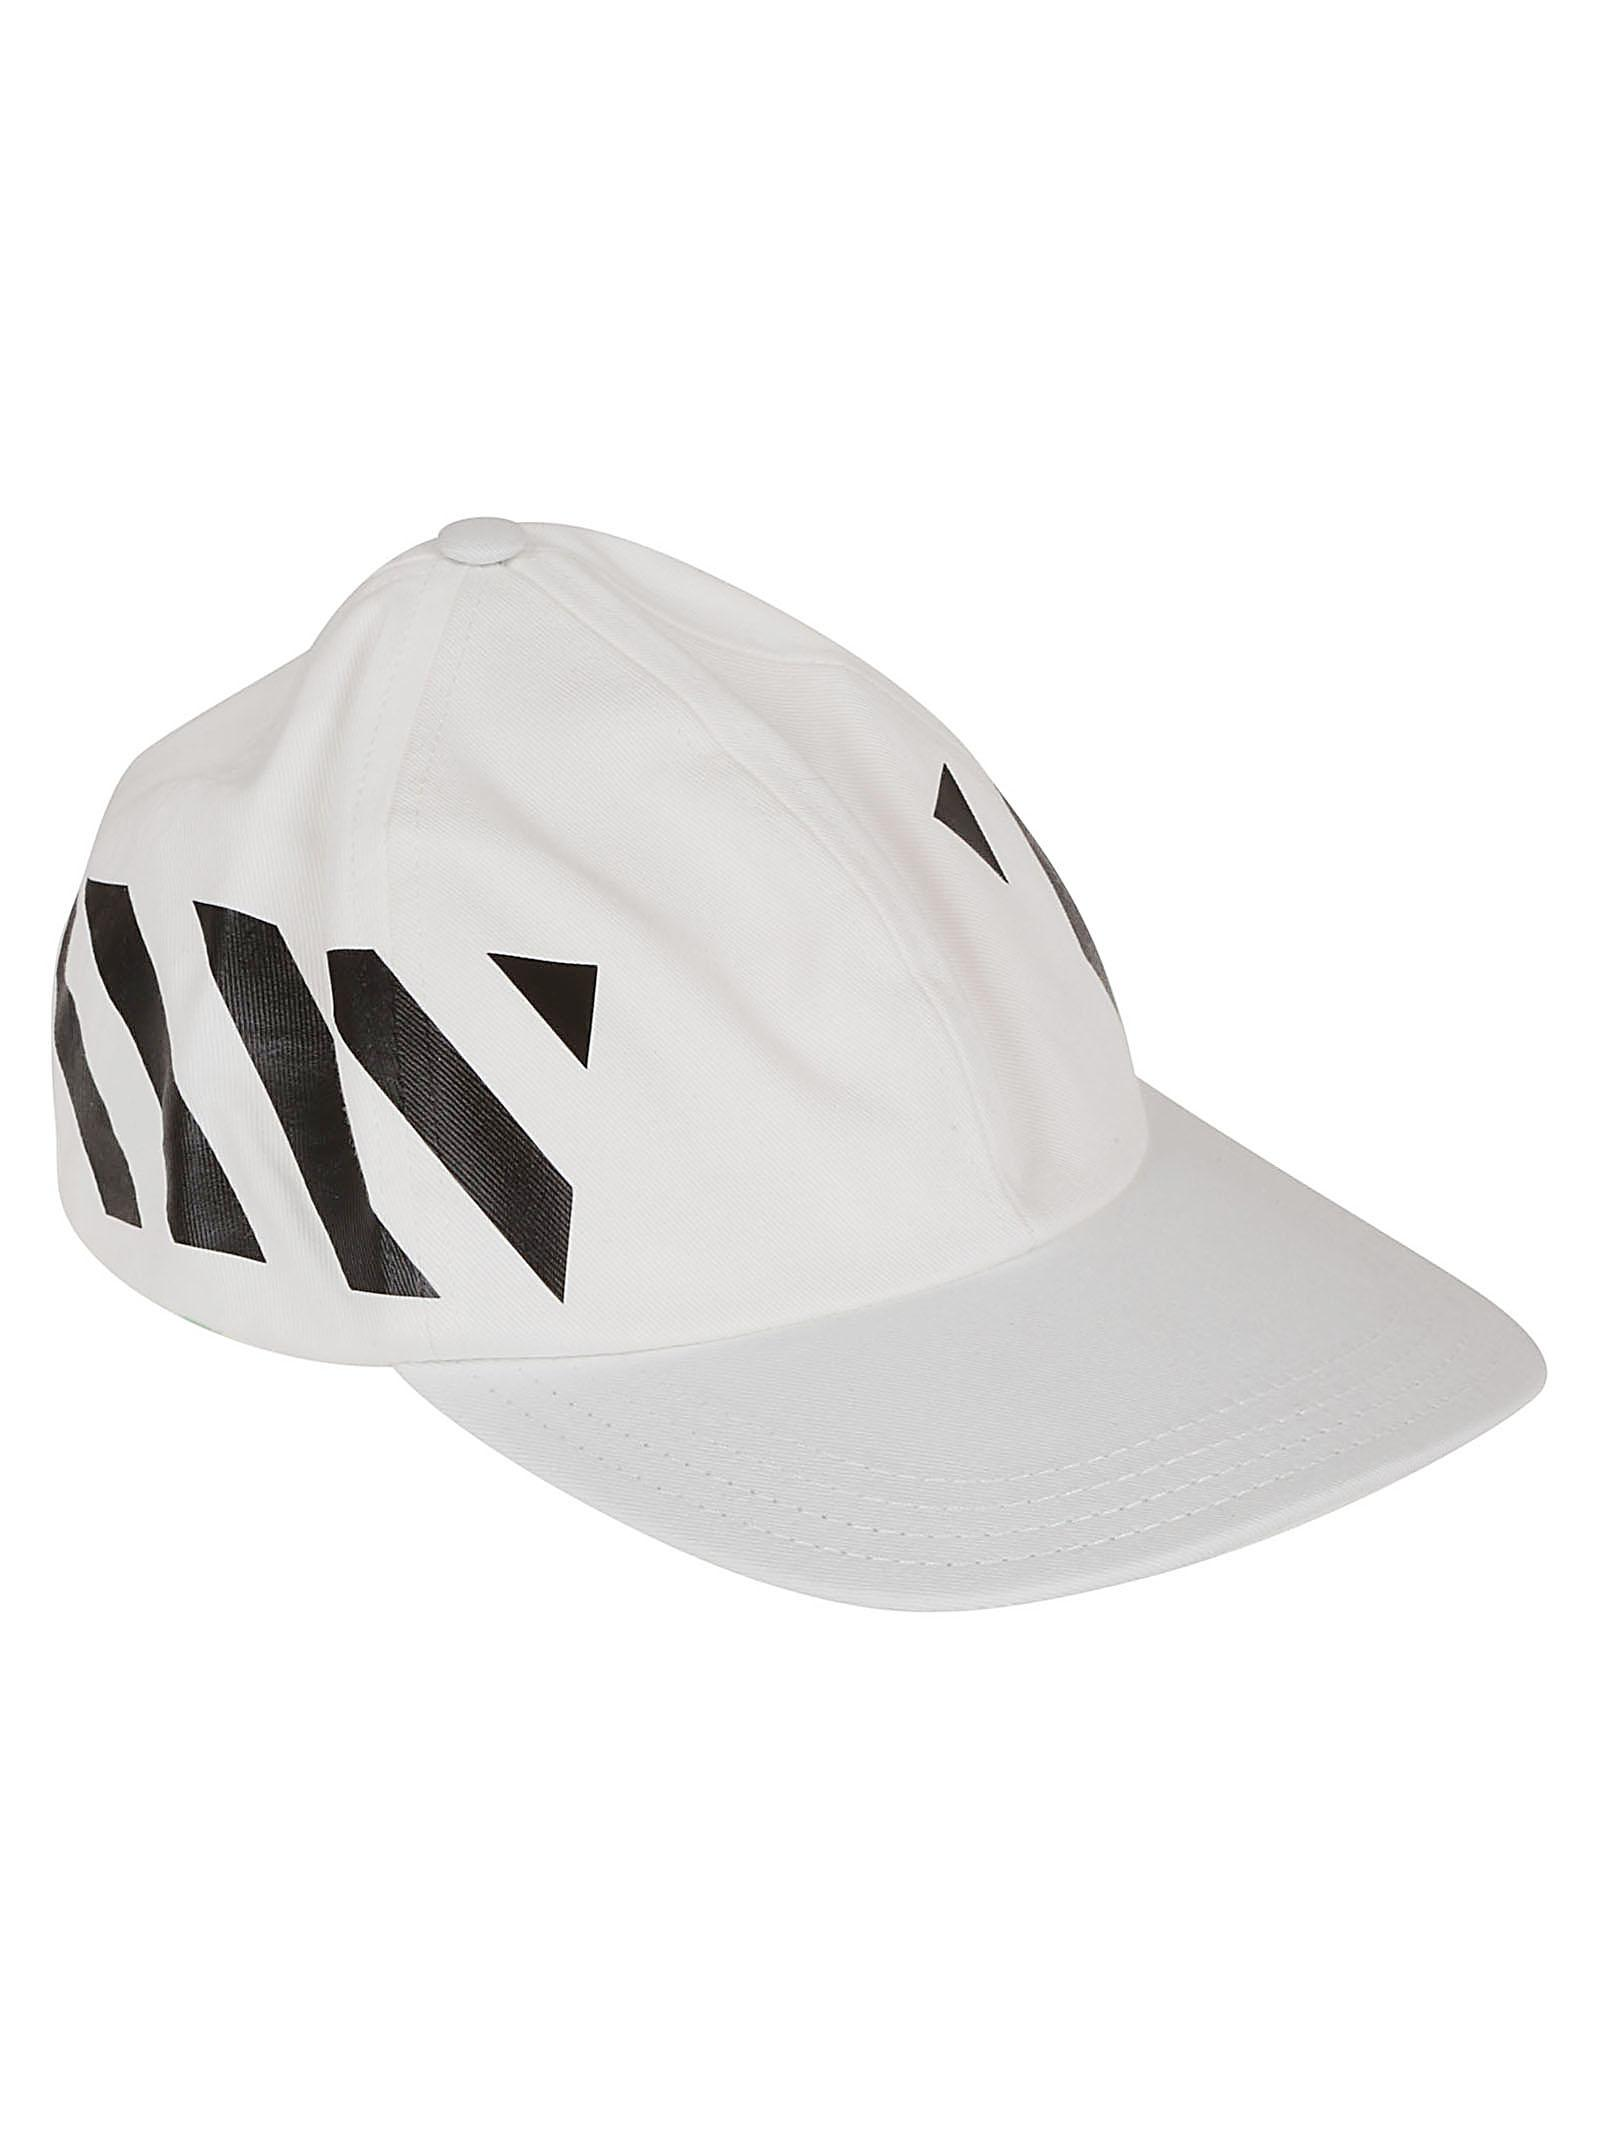 d93990dc8bb Off-White C O Virgil Abloh Baseball Cap in White for Men - Lyst